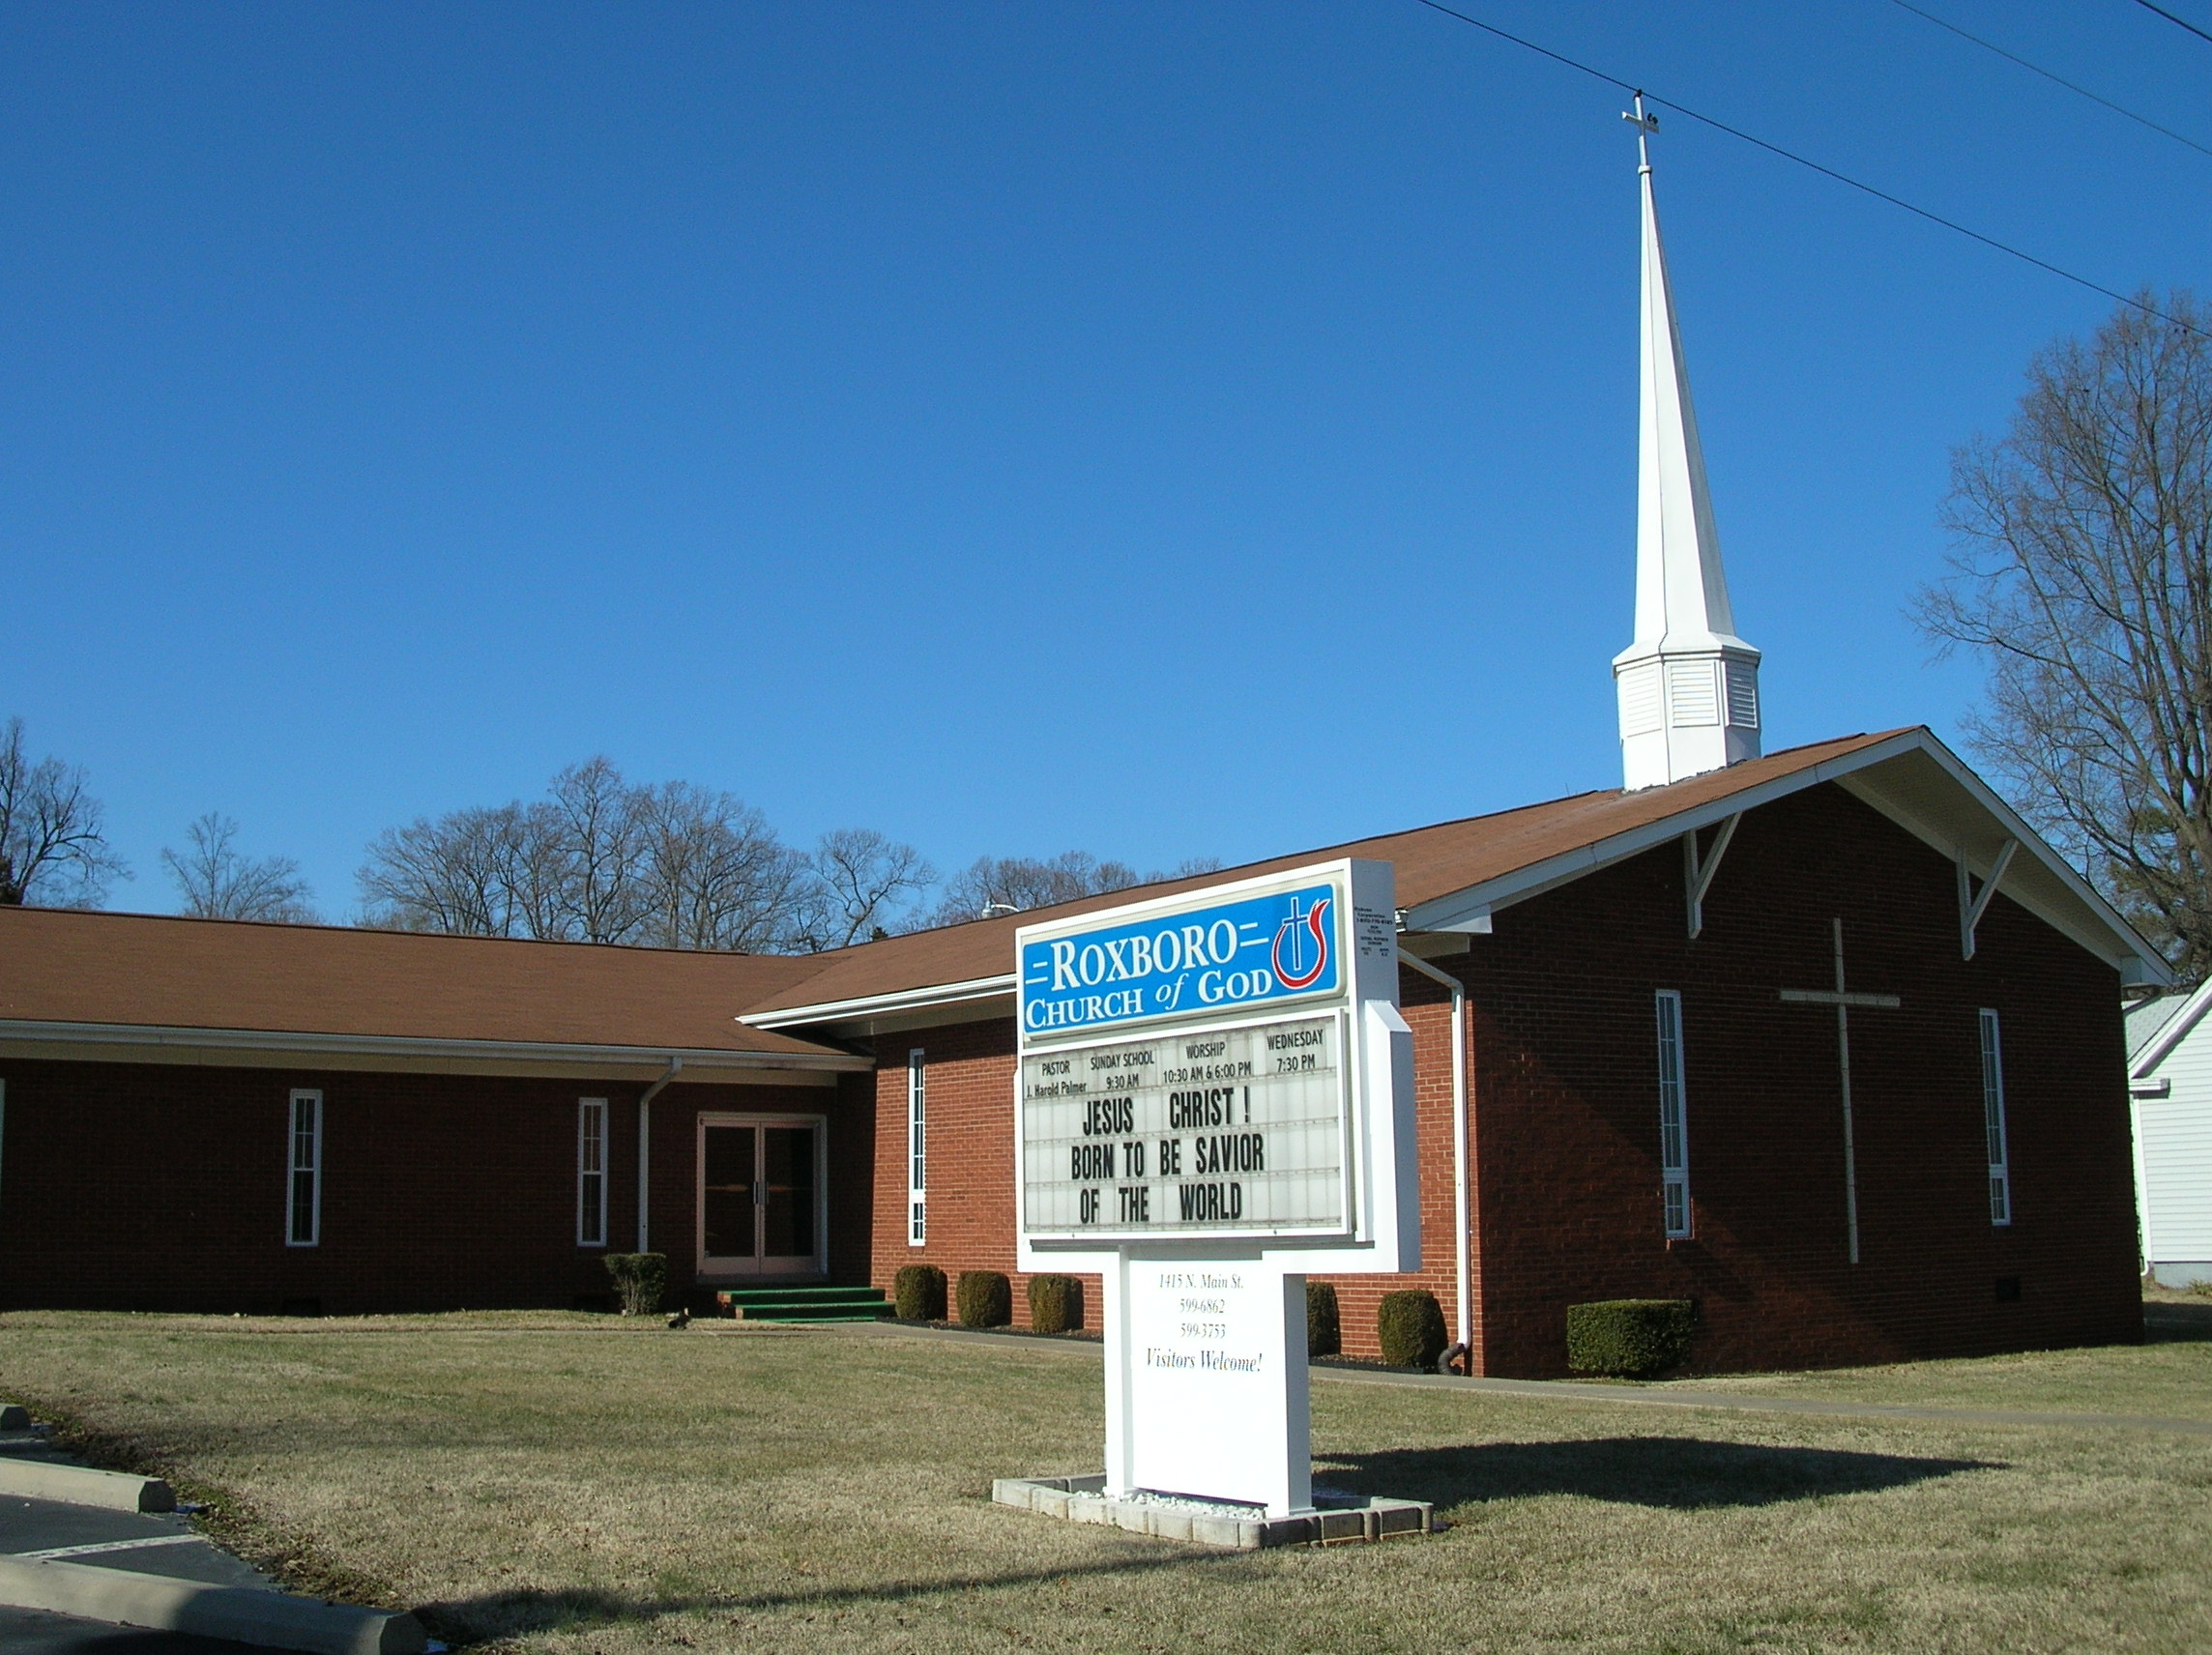 Roxboro church of god